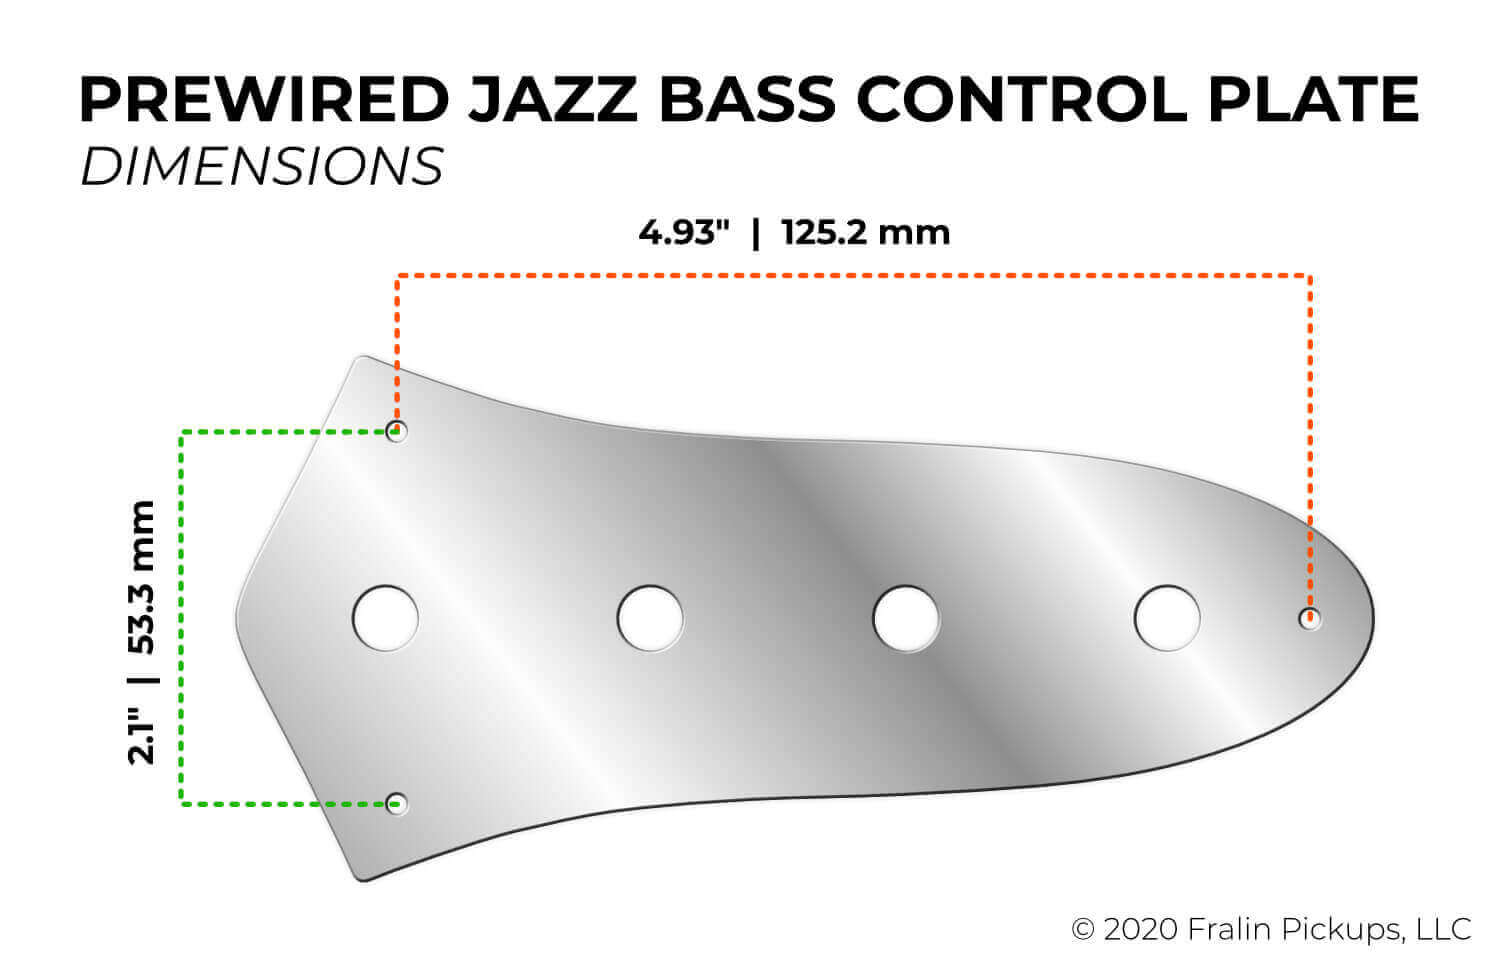 Prewired Jazz Bass Control Plate Dimensions